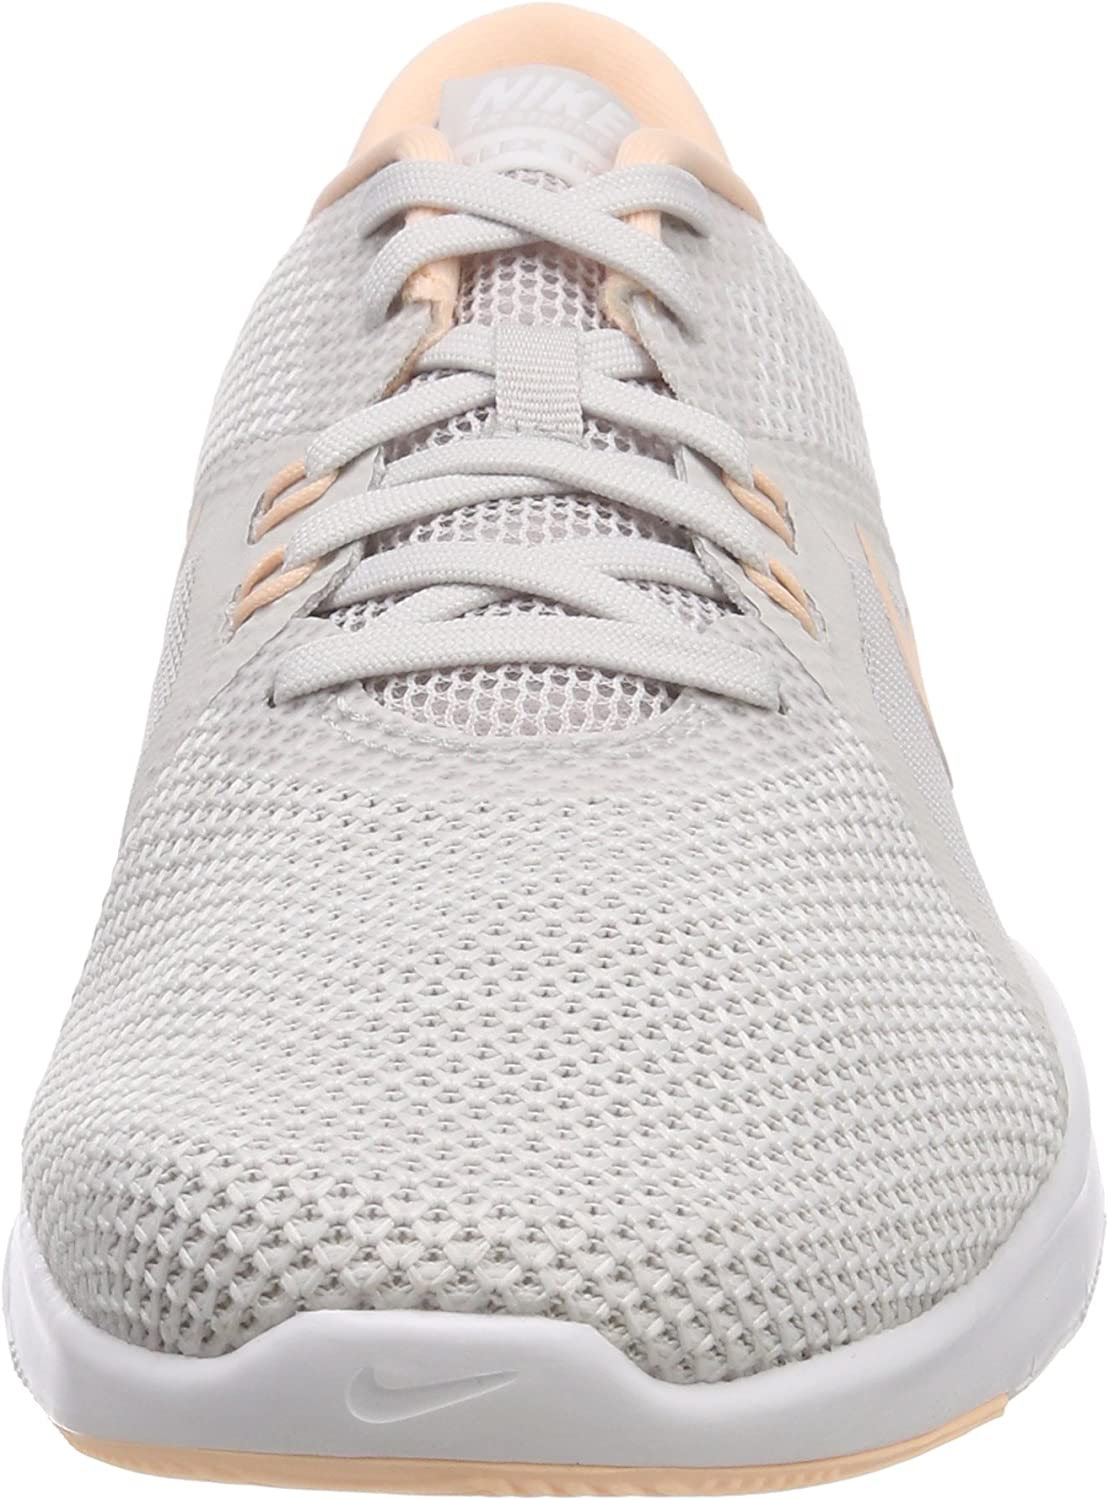 Remise Chaussures de sport Nike Free TR 8 Femme Cramoisi